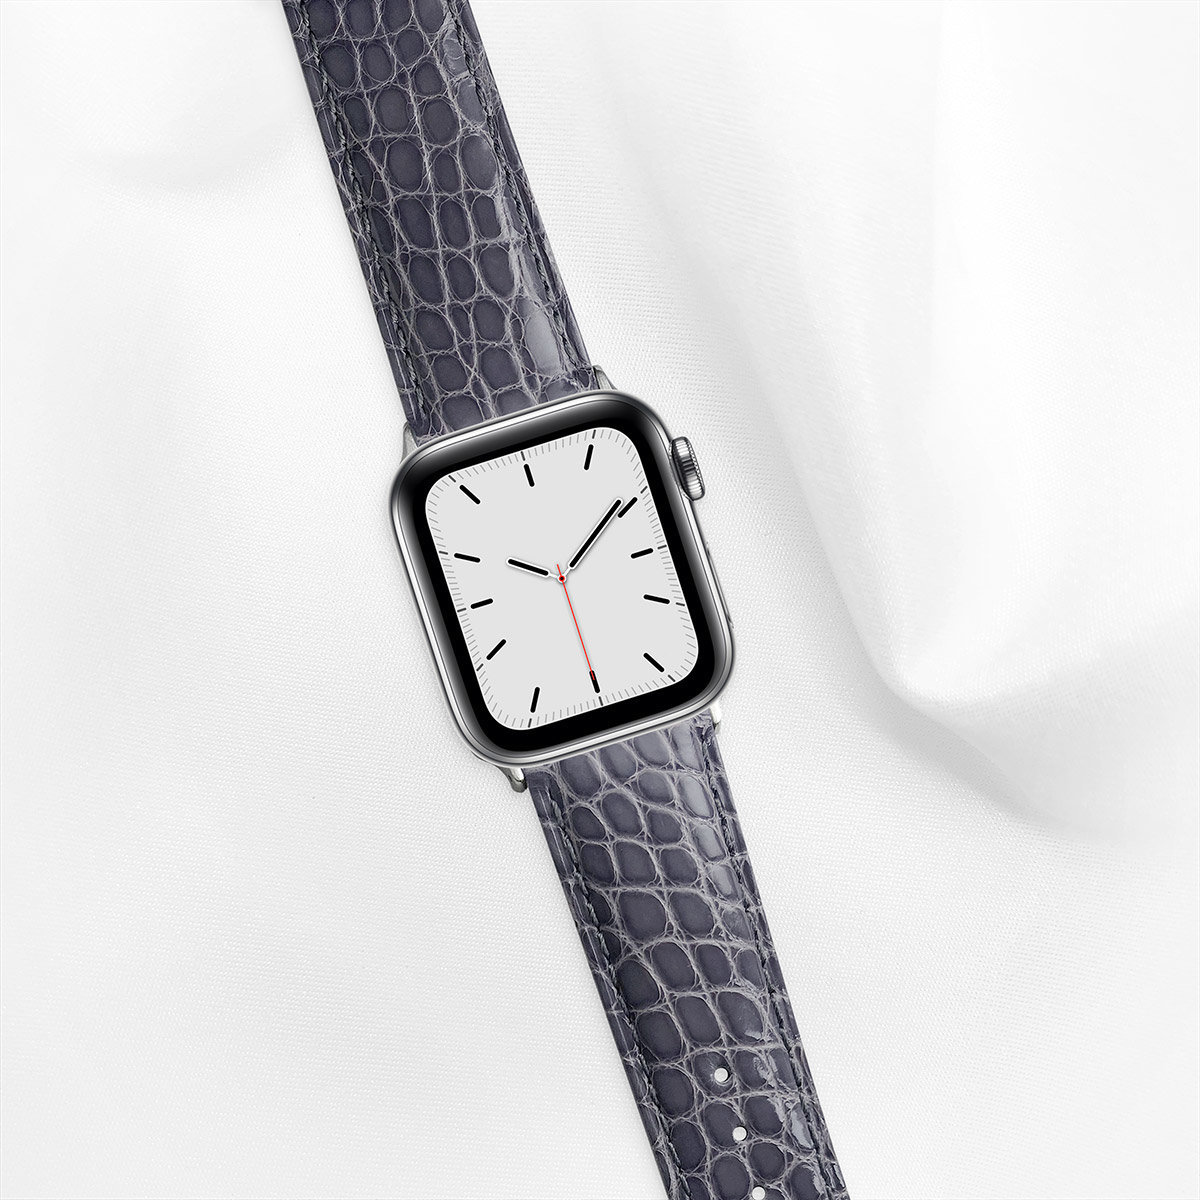 Shiny Alligator 40mm Apple Watch 5 Strap, Smokey Grey, Round Scales, for Small Casing